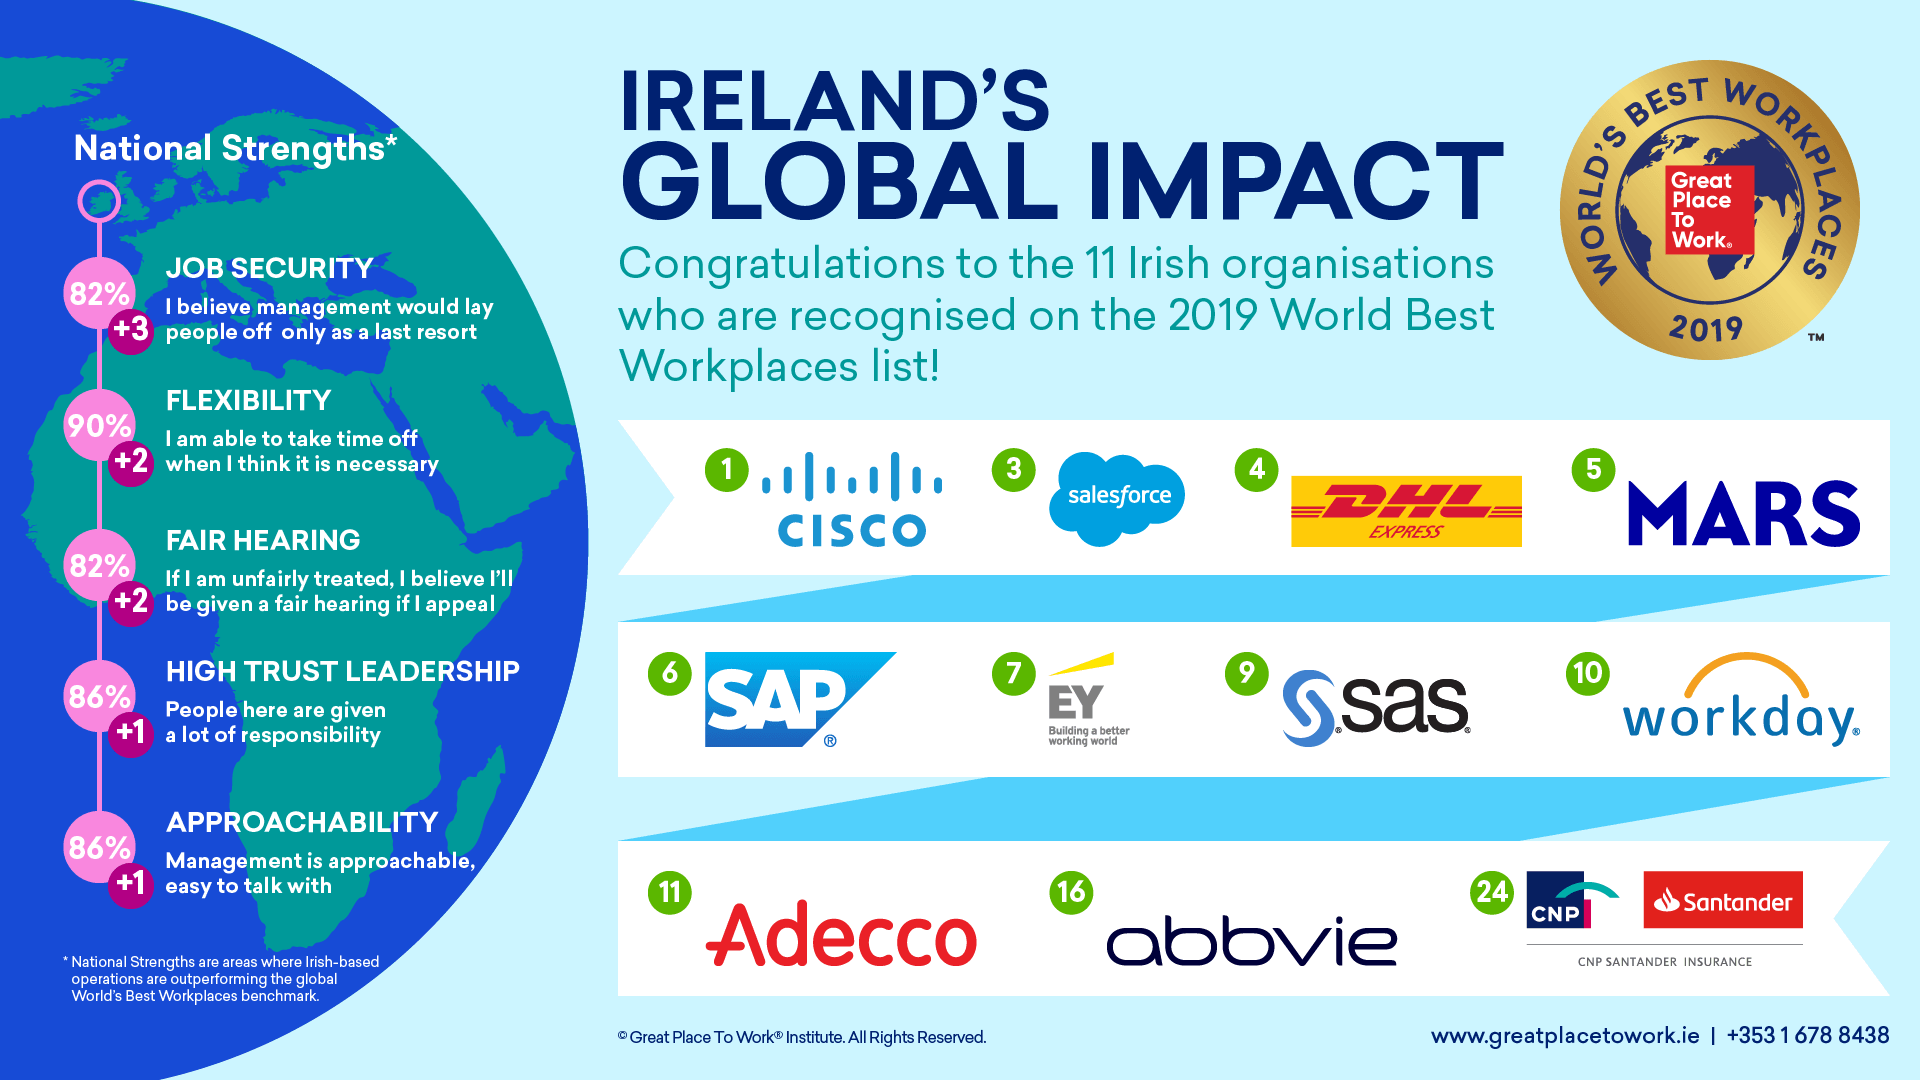 Infographic highlight Ireland's global impact in terms of the world's best places to work